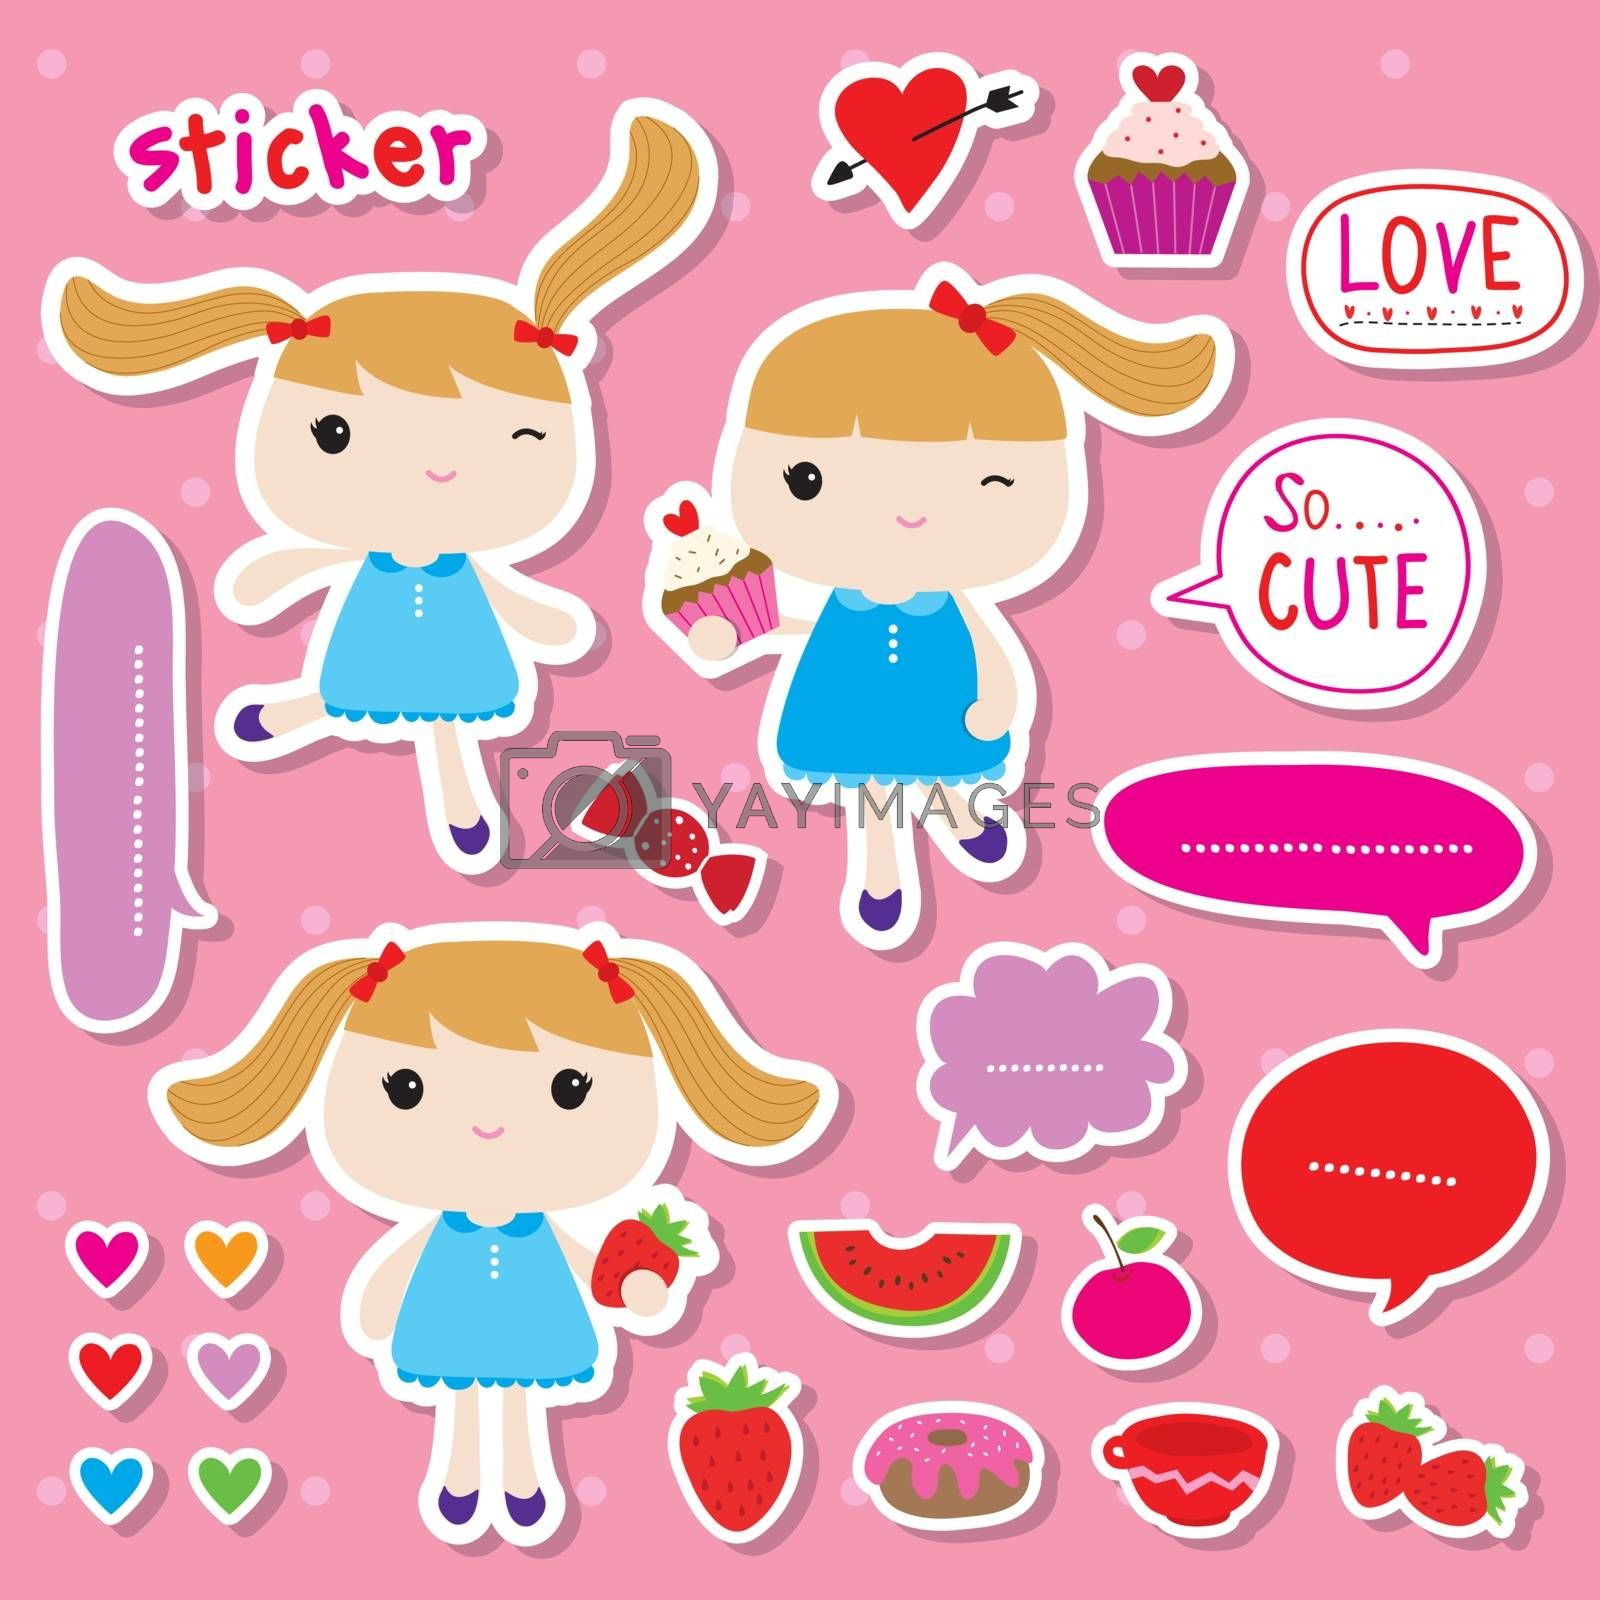 Royalty free image of Set of Sticker or Tag Cute Girl and Fruit Food Dessert cartoon Vector by Ienjoyeverytime